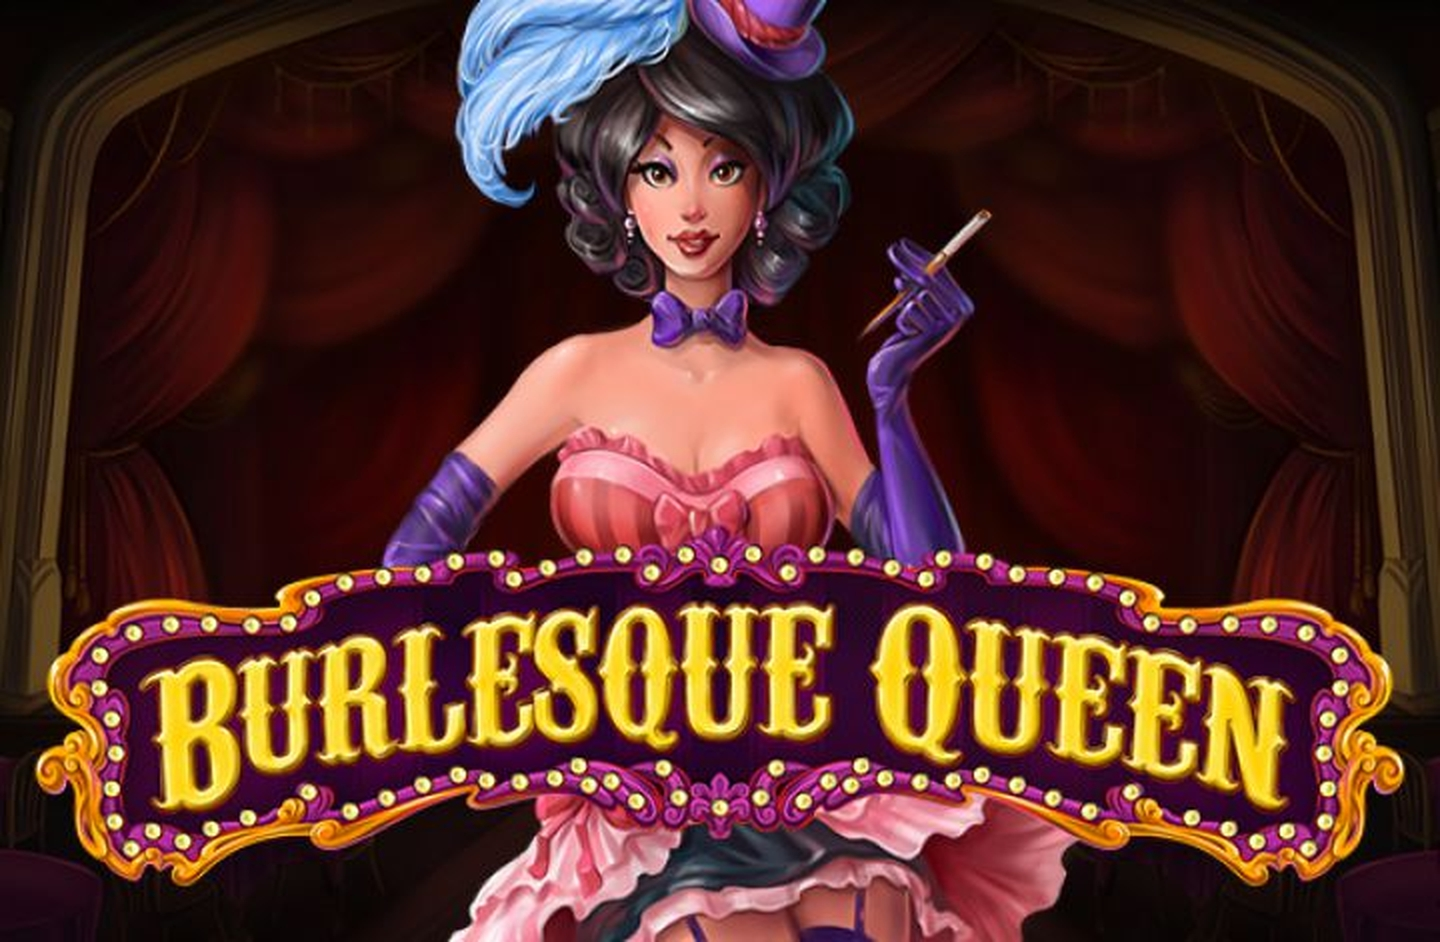 The Burlesque Queen Online Slot Demo Game by Playson